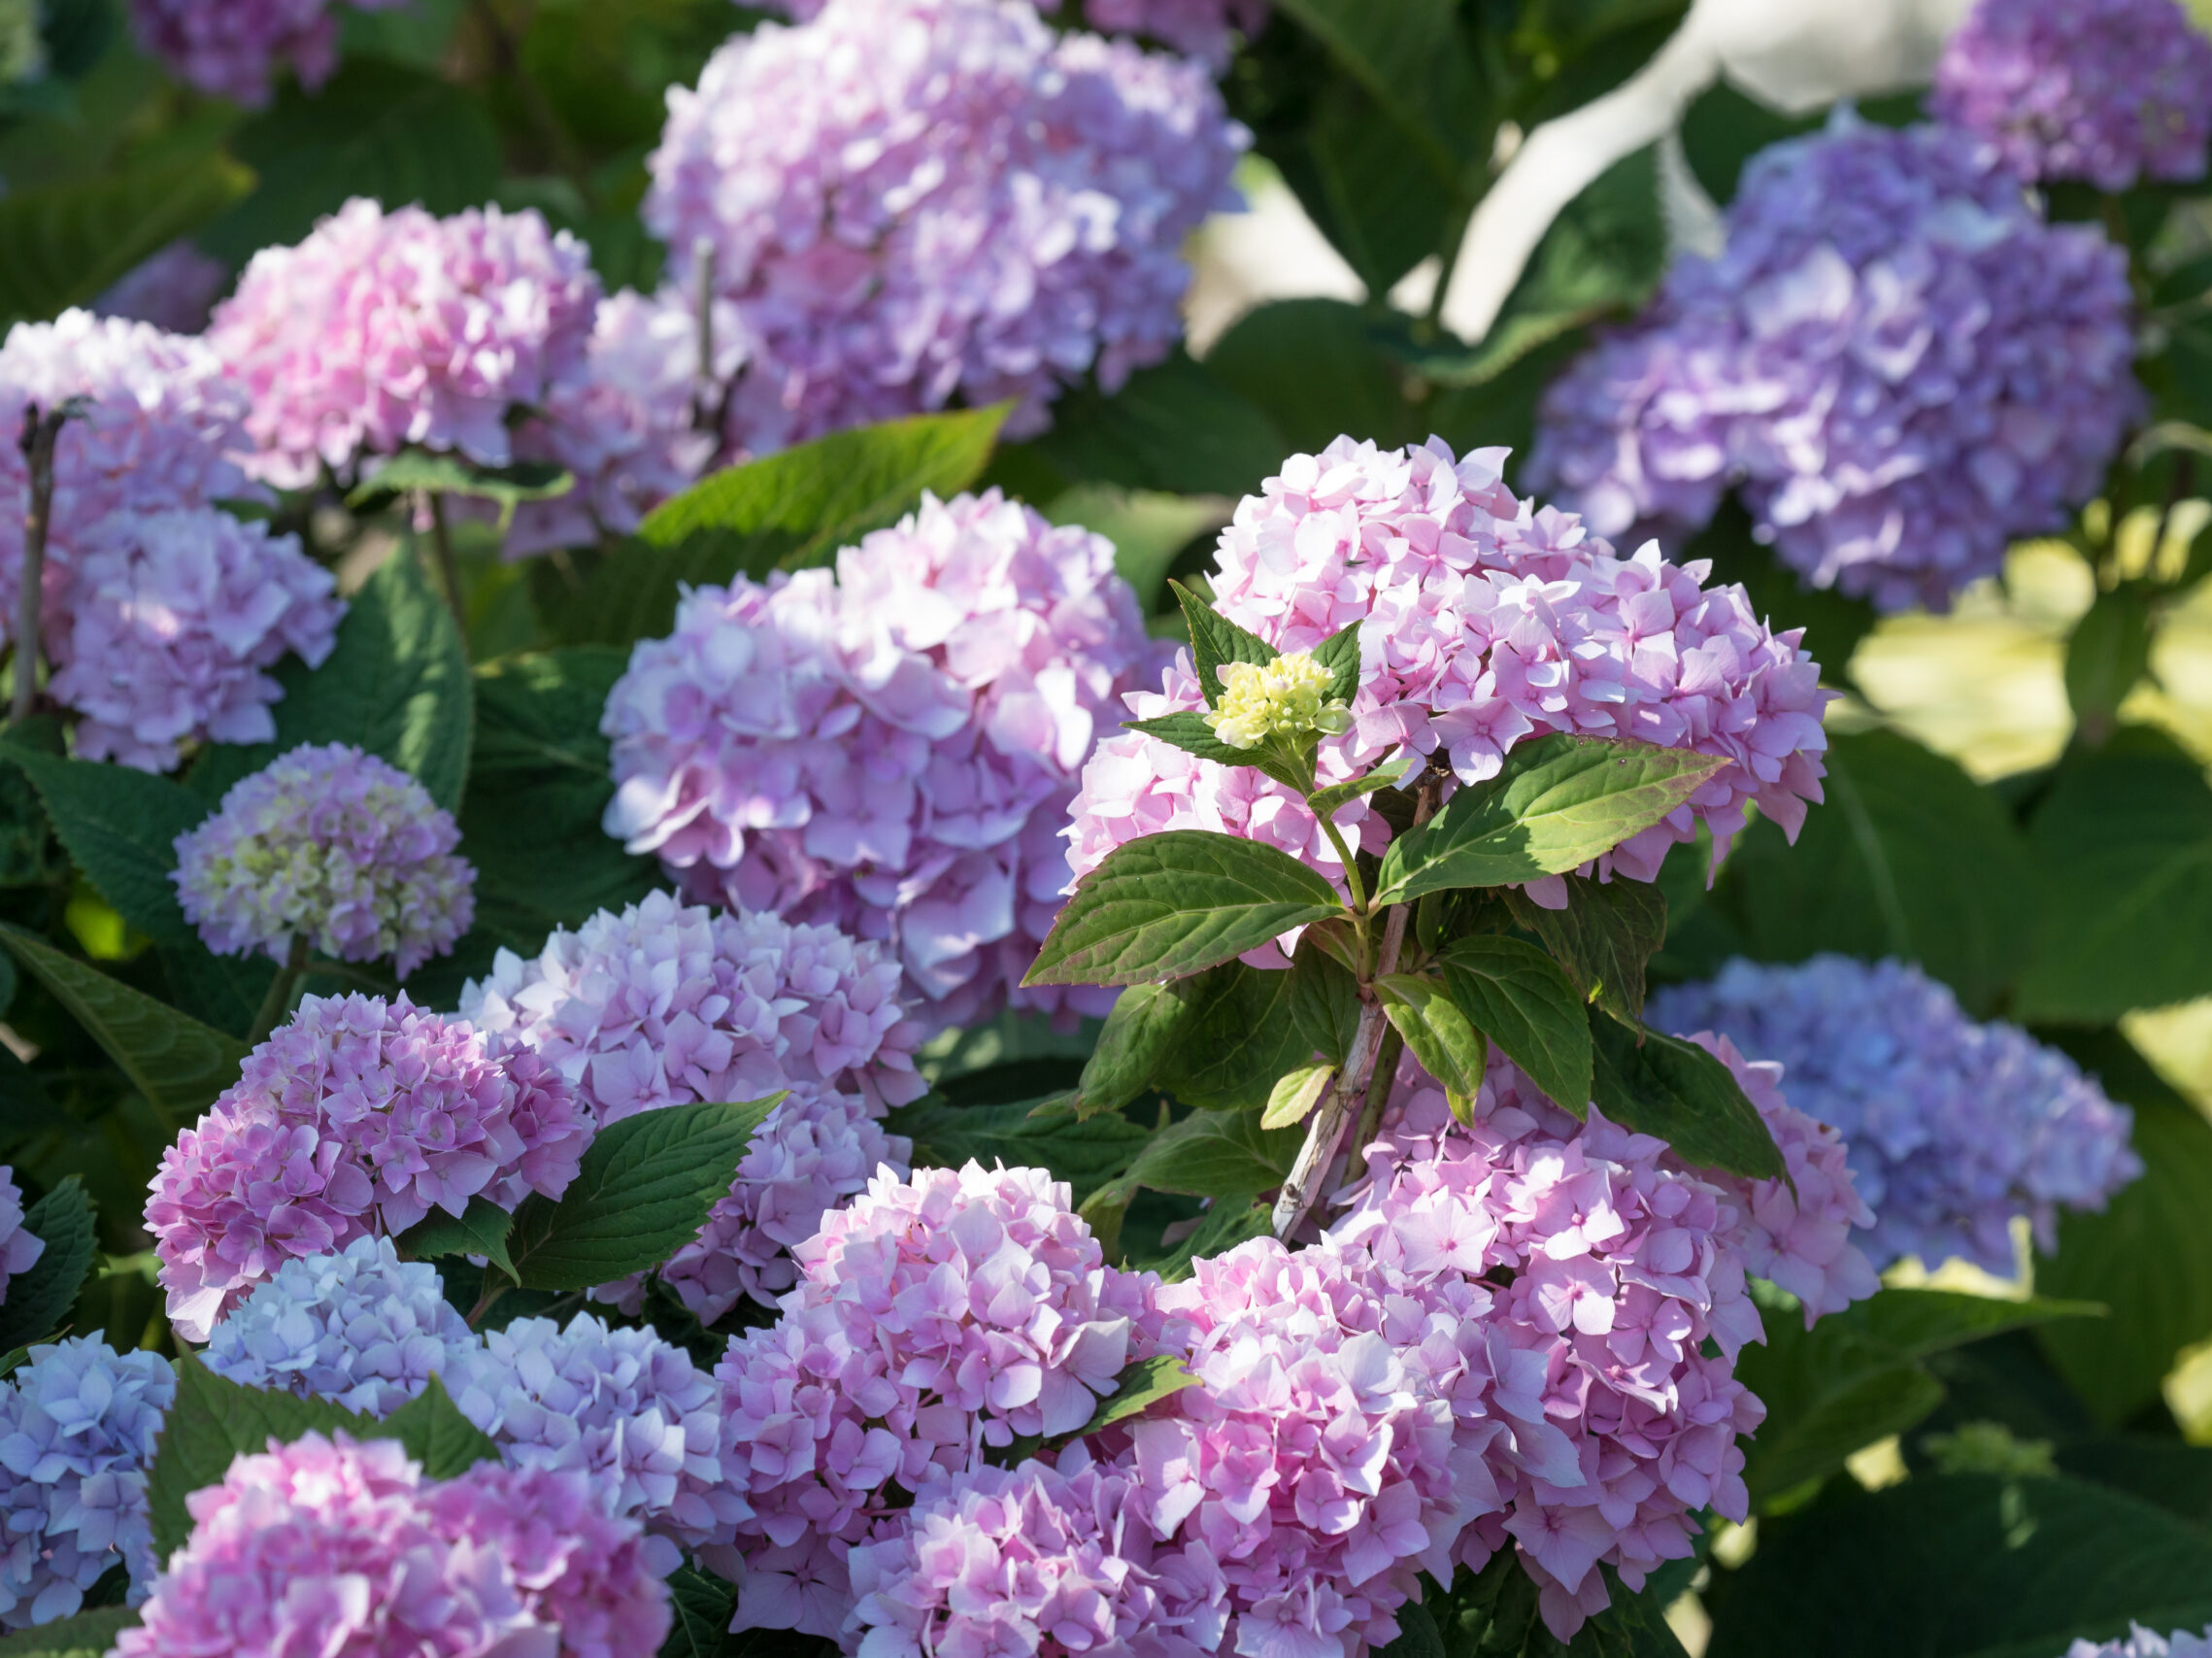 Pink and purple hydrangea flowers